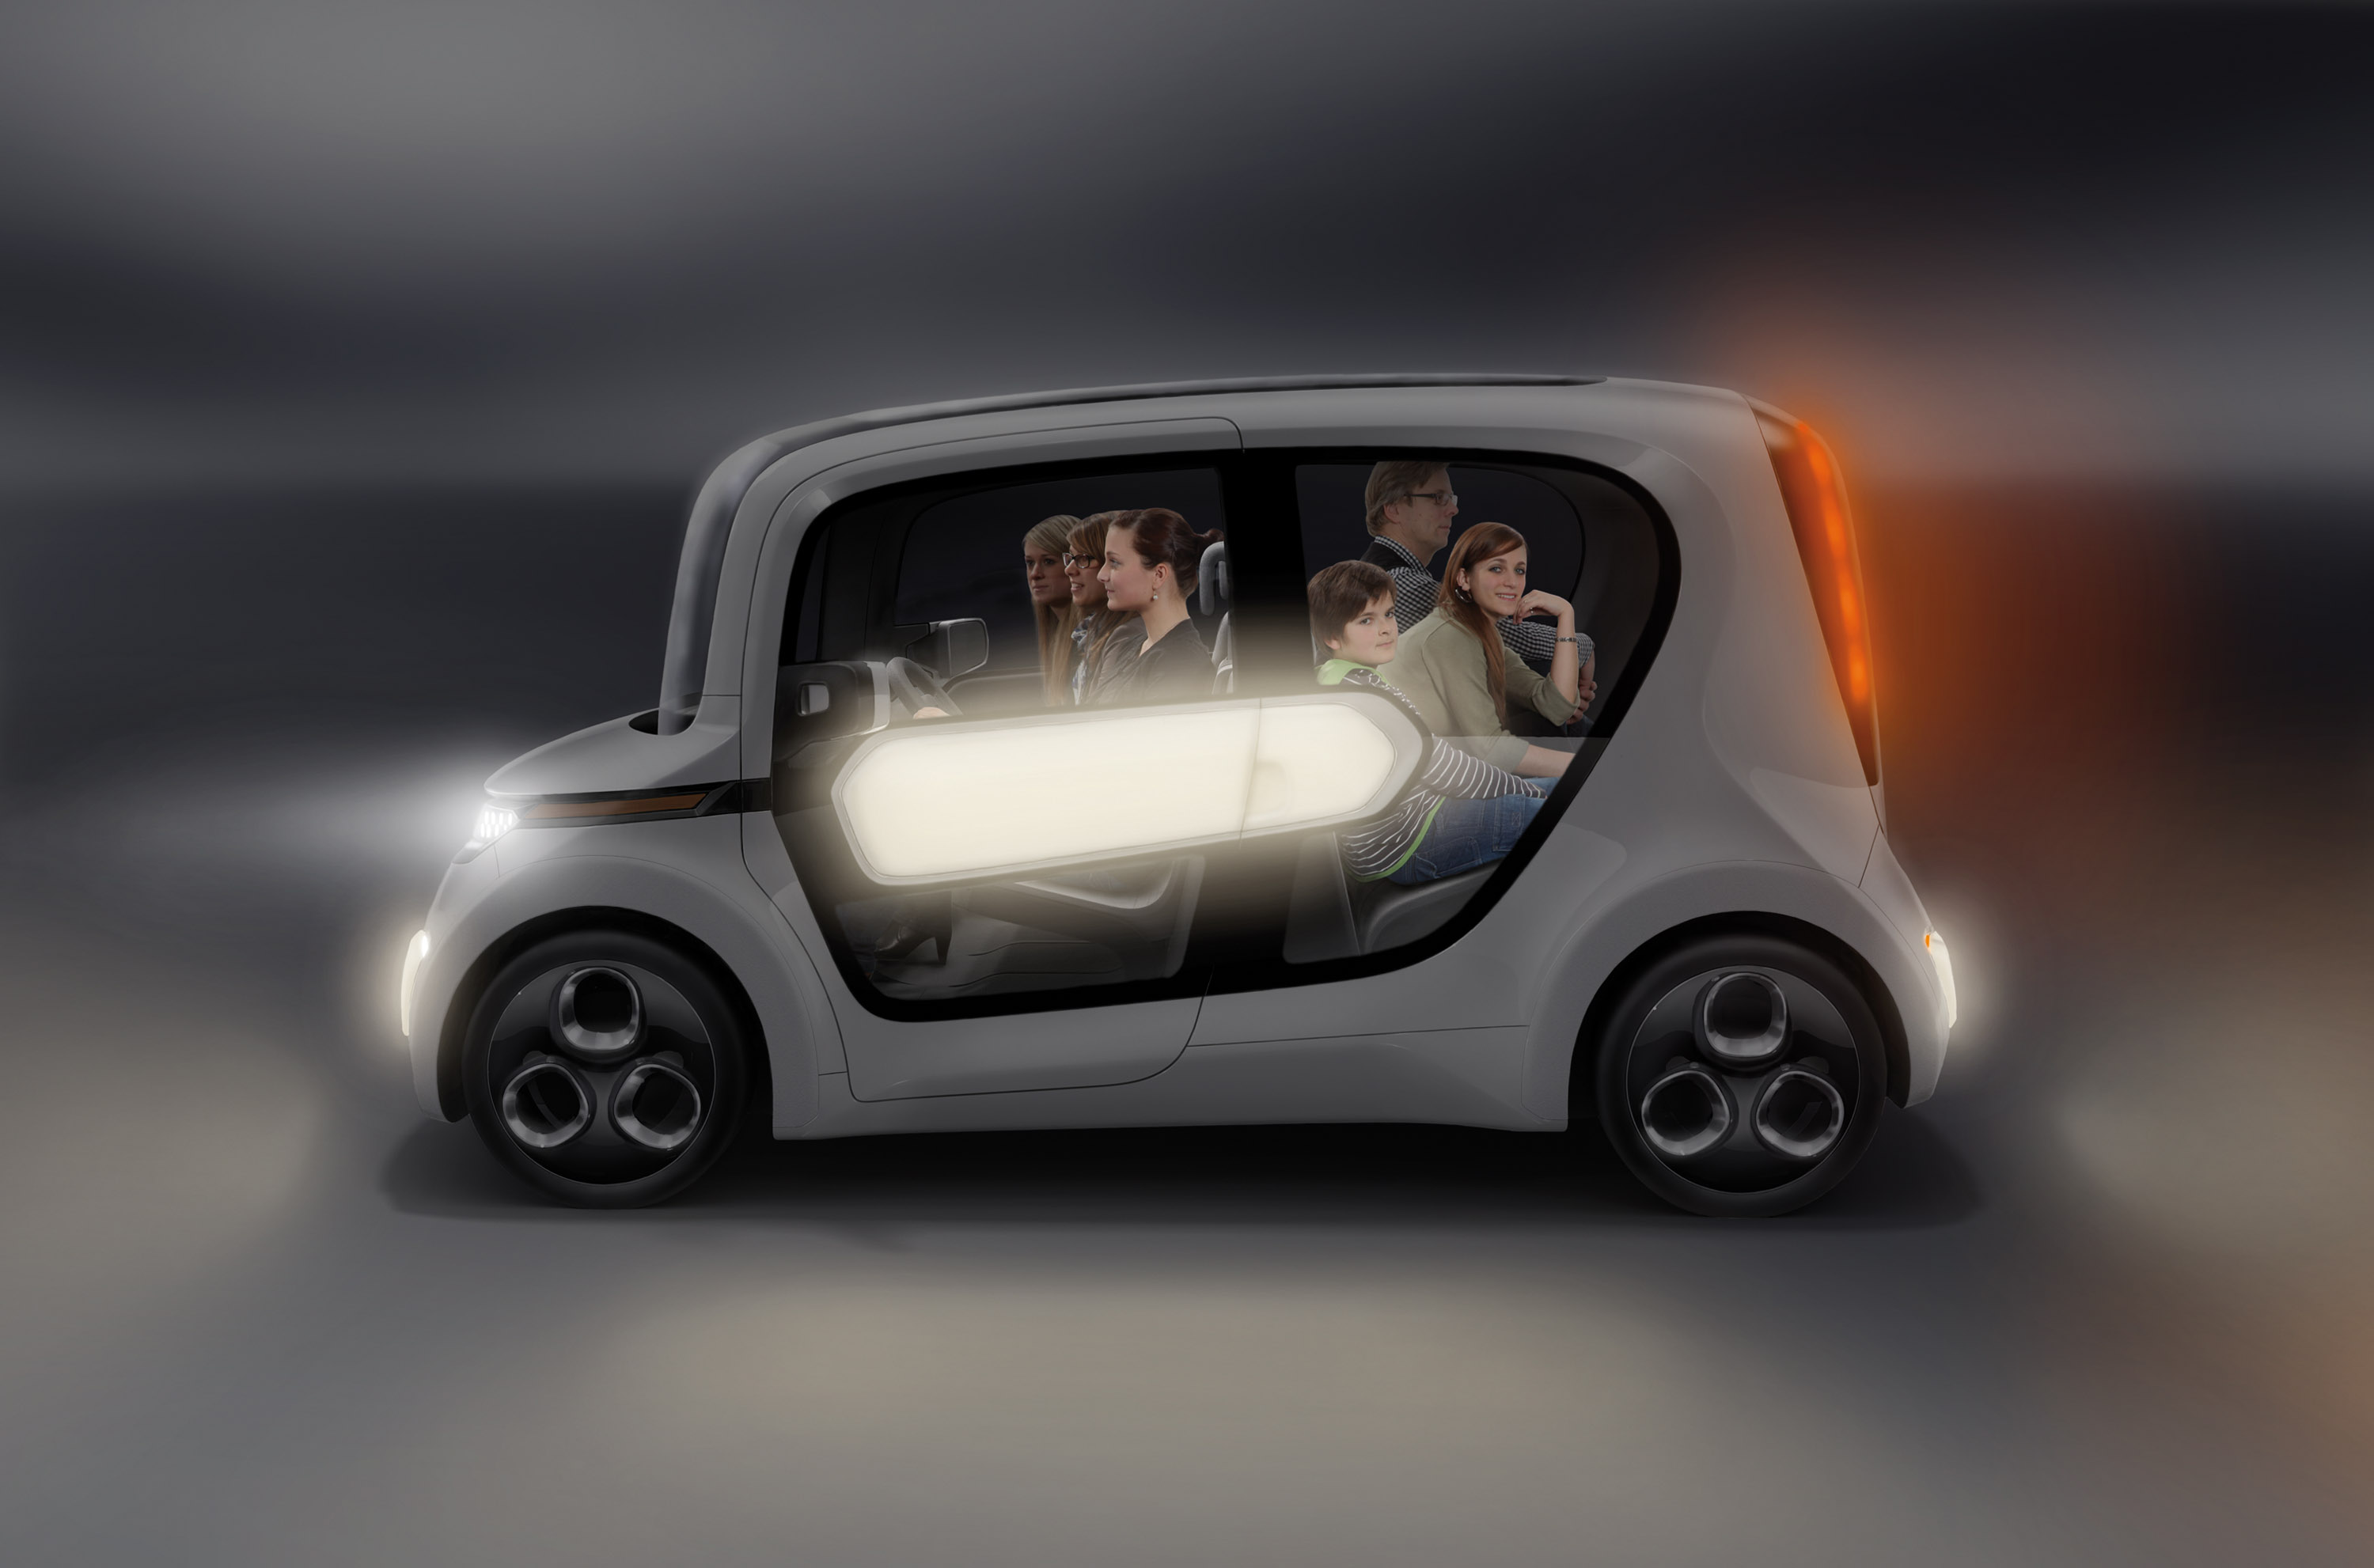 2012 Edag Light Car Sharing Concept Car Picture 66051